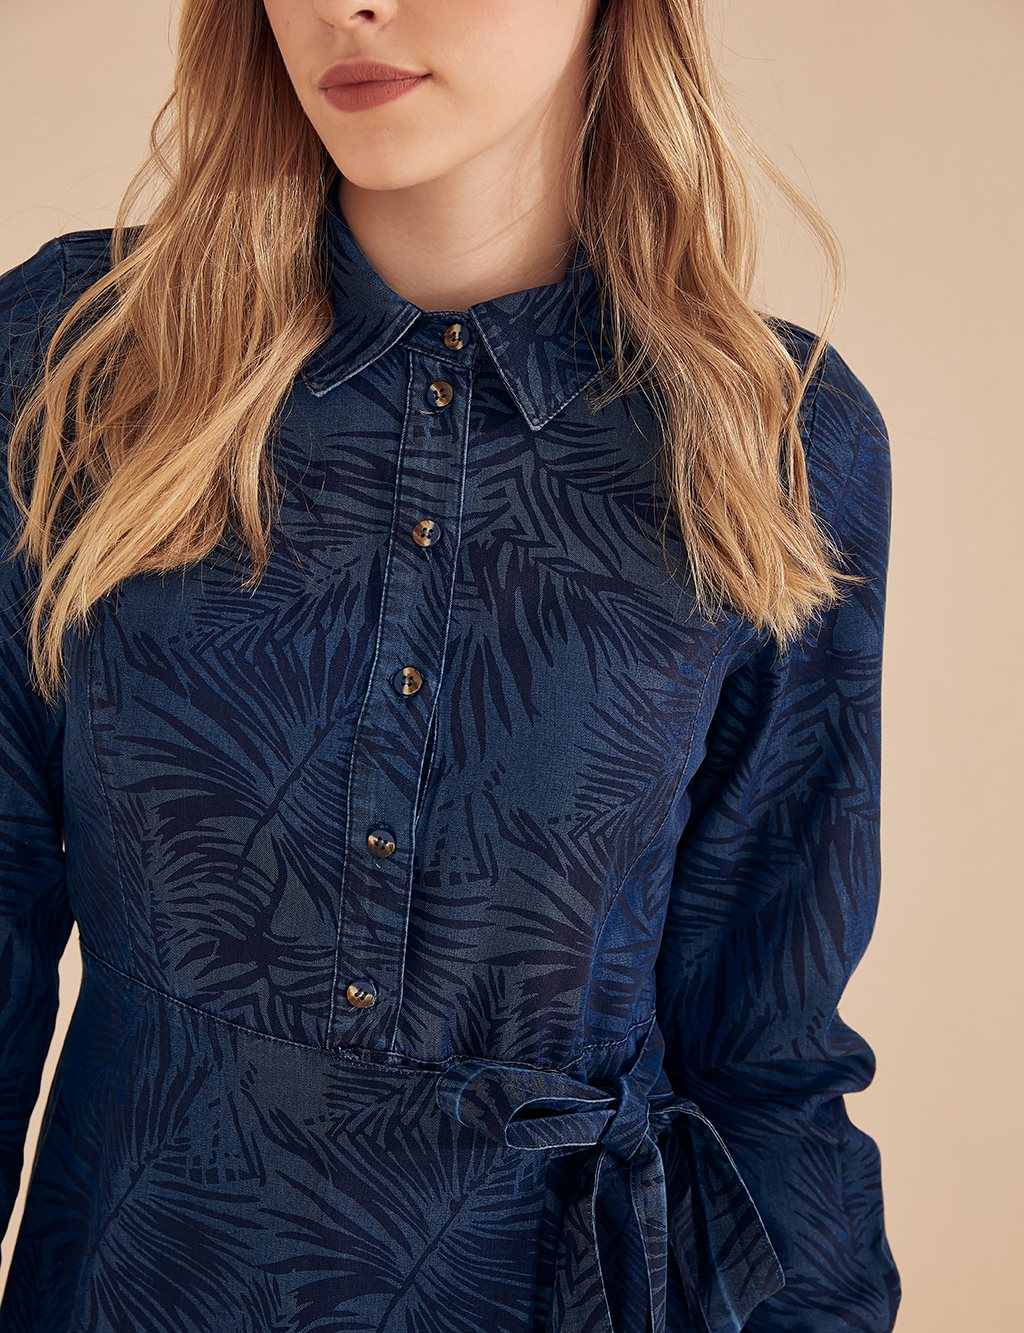 Leaf Patterned Denim Dress B20 23066 Navy